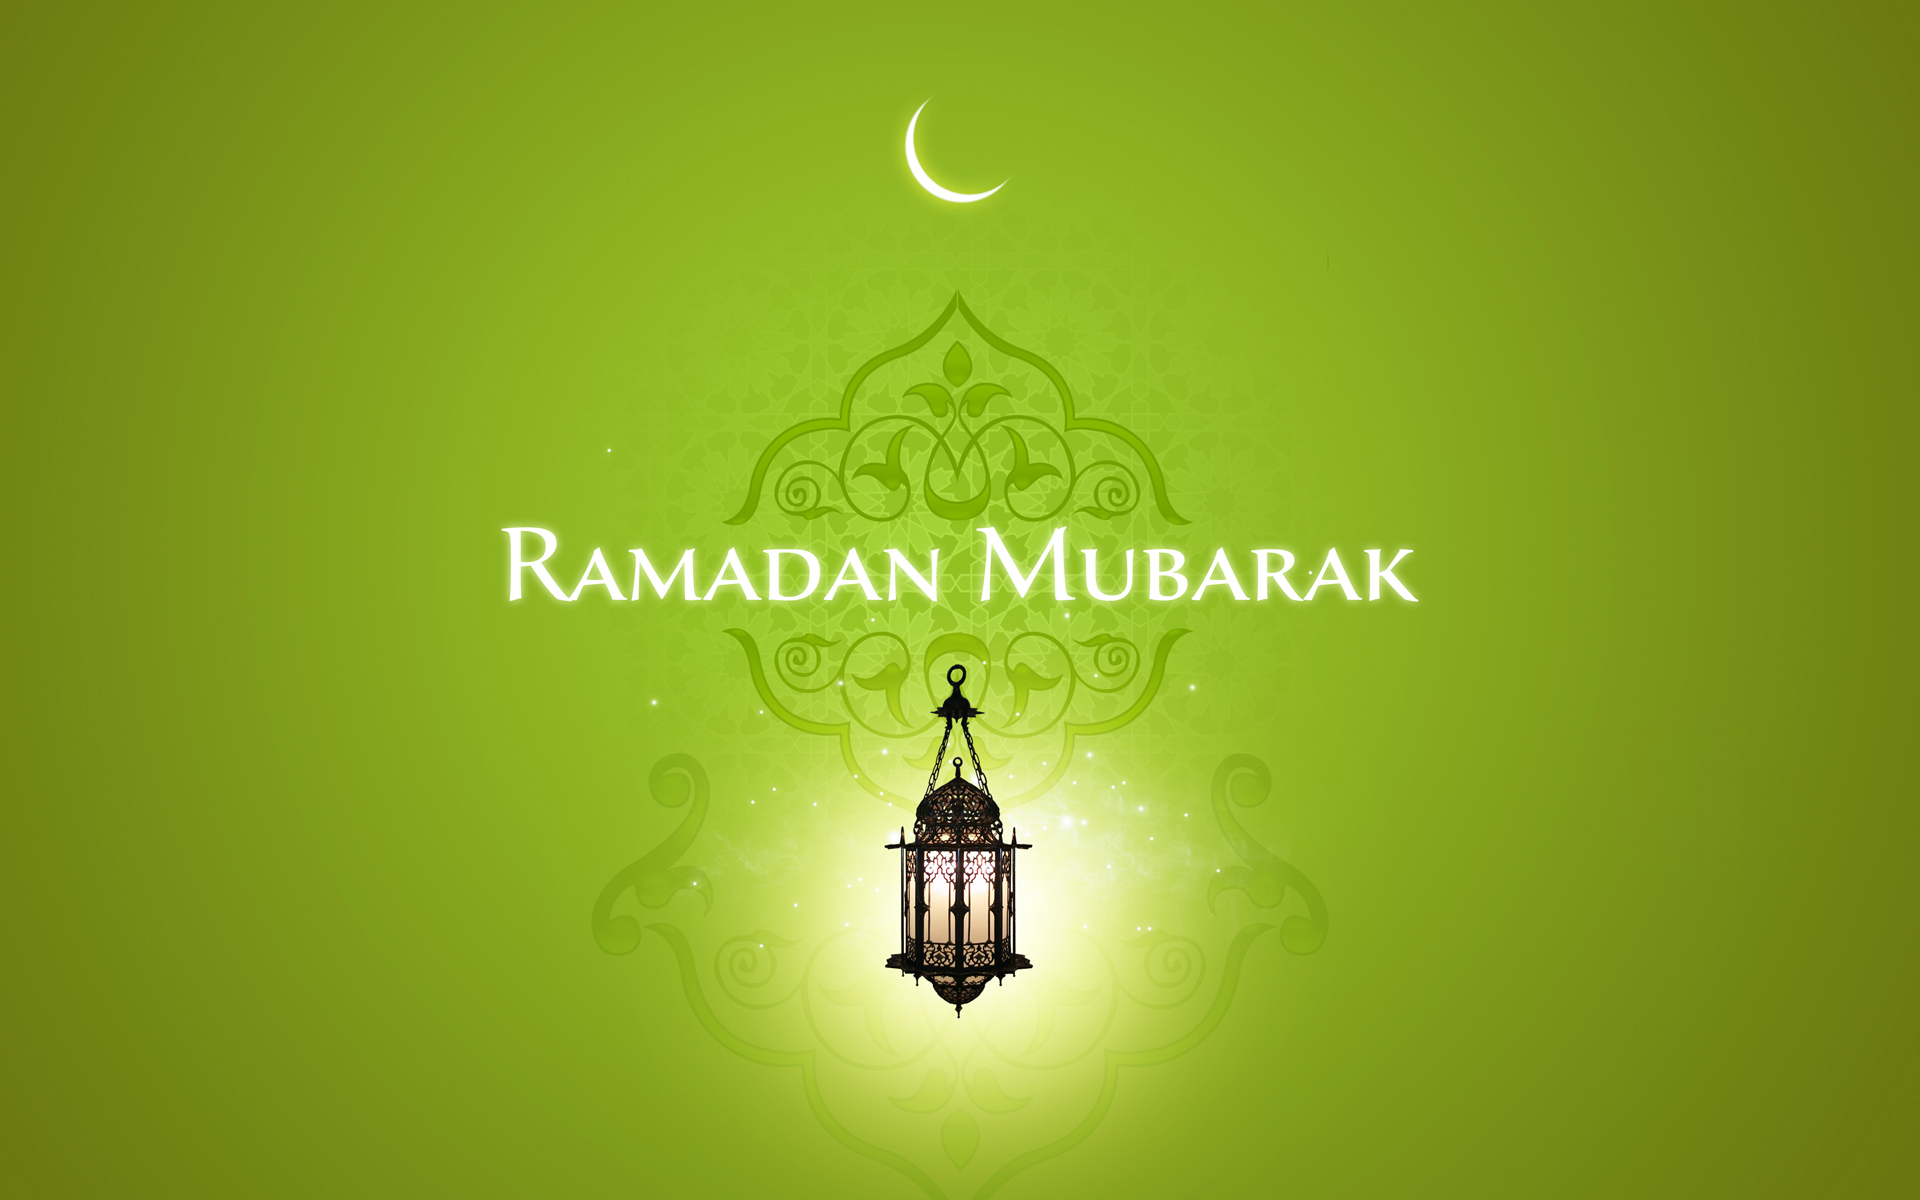 Top Ramadan Wallpaper Free Download, Islam HD Desktop